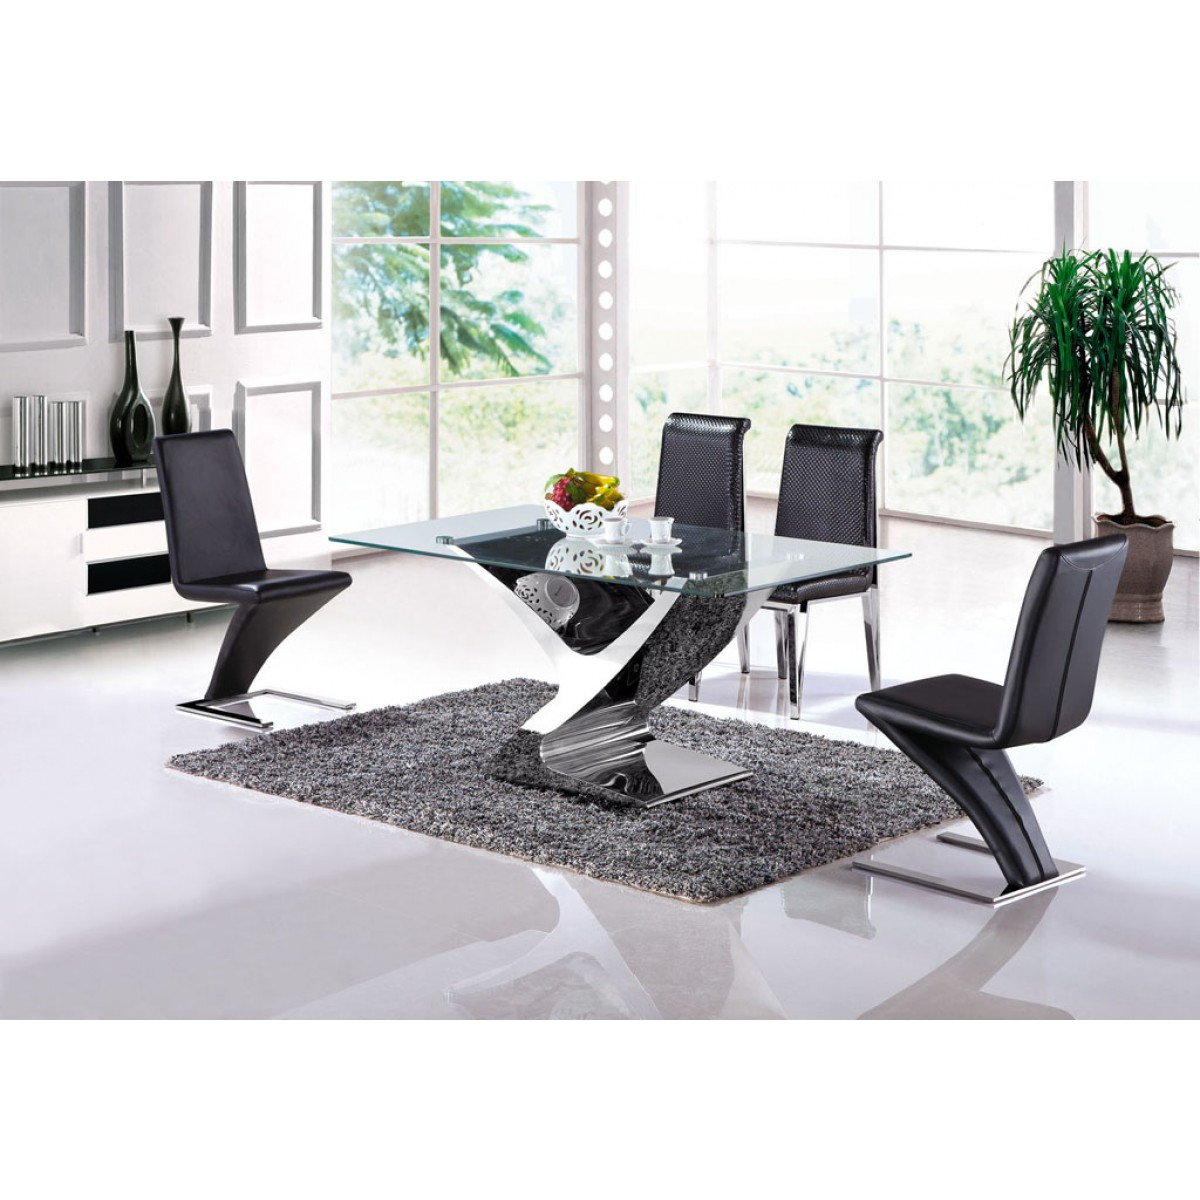 Table de salle manger en inox selena pop for Table salle a manger design xxl